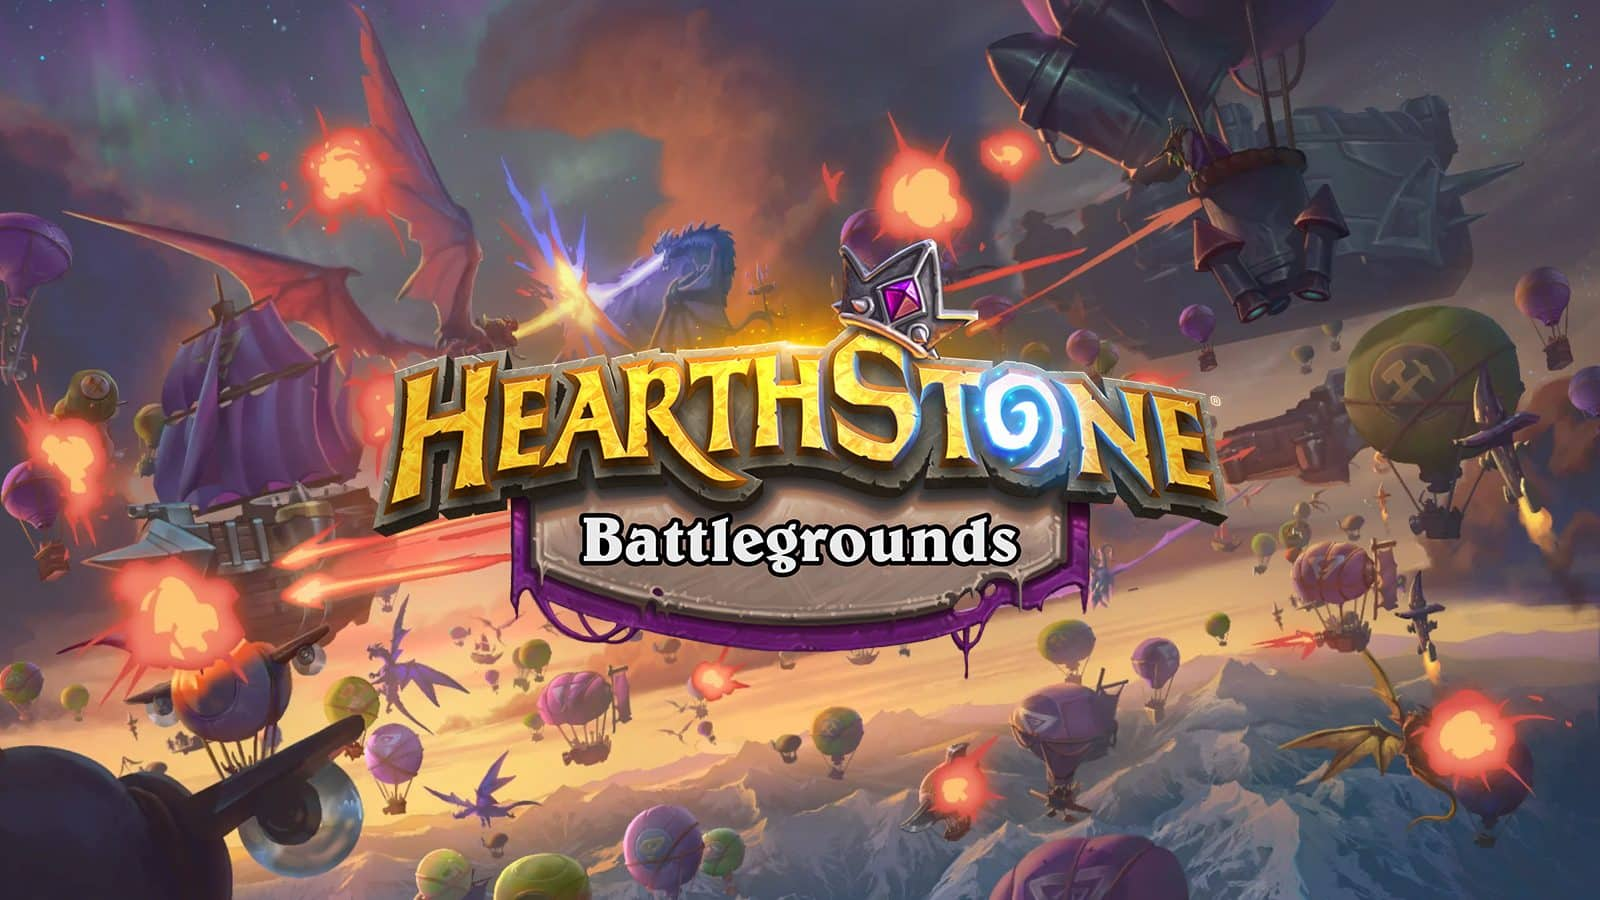 vignette-hearthstone-meilleurs-heros-hs-battlegrounds-guide-tier-list